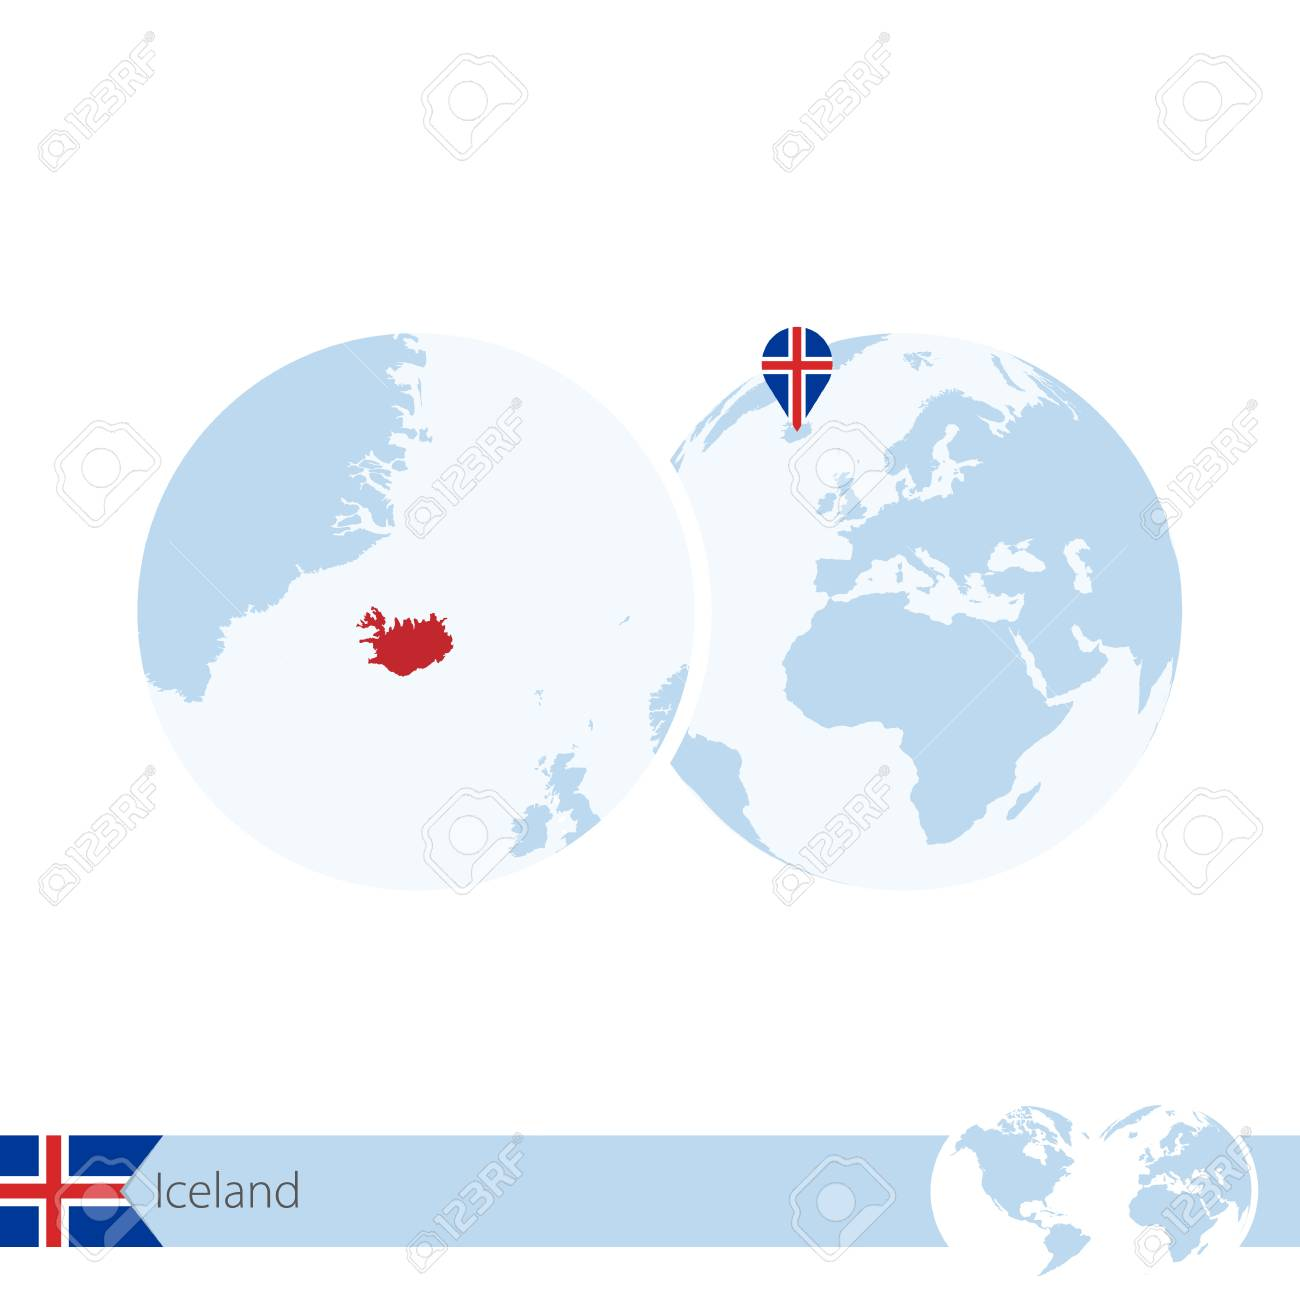 Iceland on world globe with flag and regional map of iceland iceland on world globe with flag and regional map of iceland illustration stock vector gumiabroncs Gallery